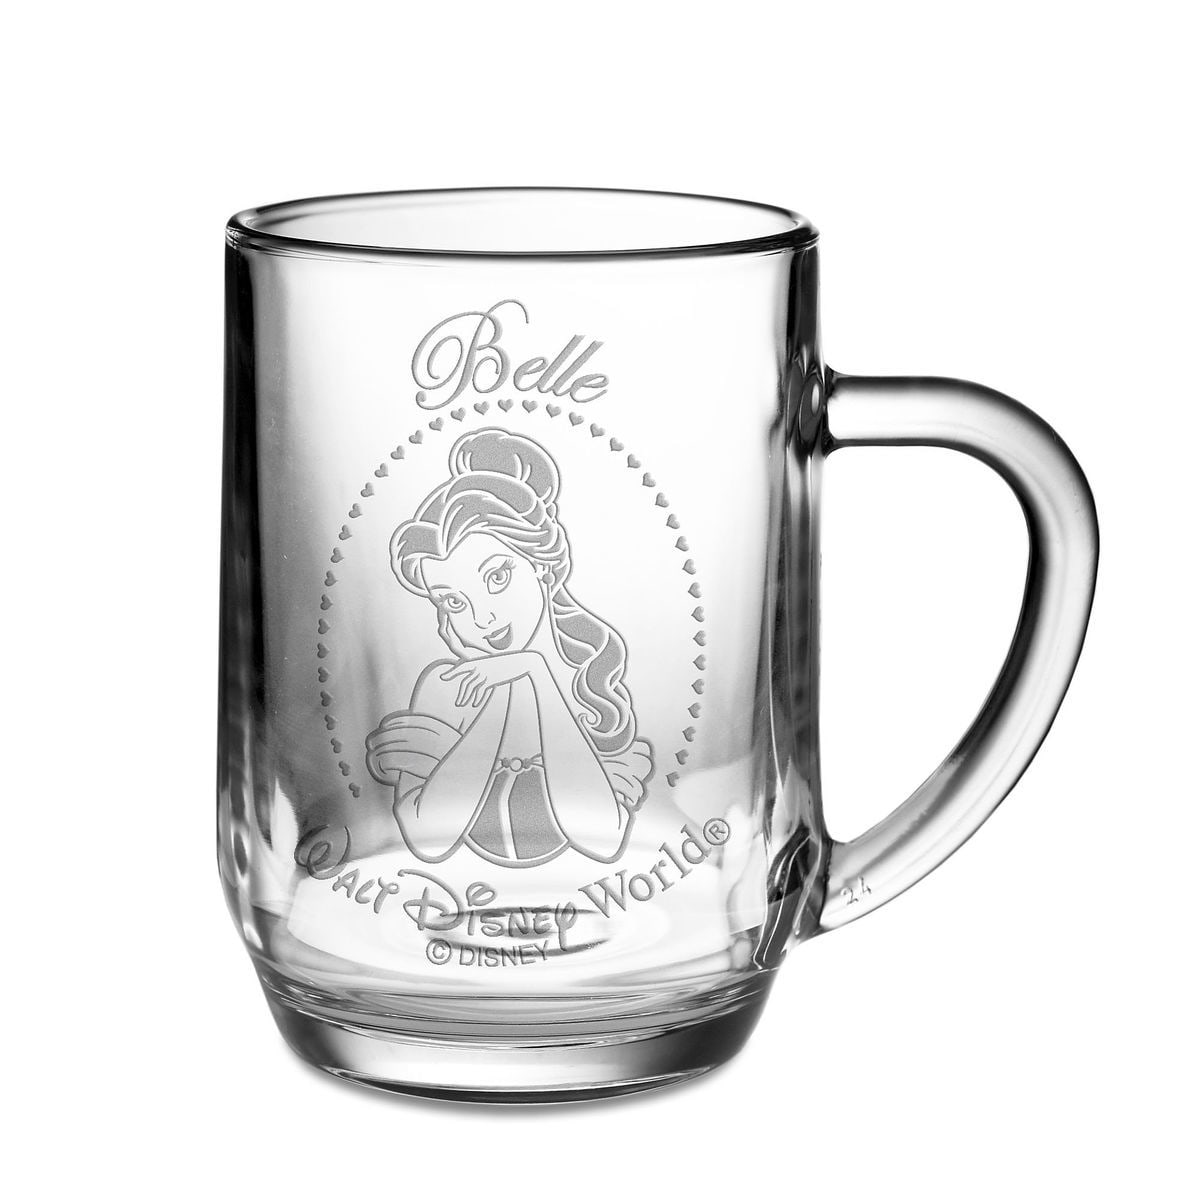 belle glass mug by arribas personalizable shopdisney